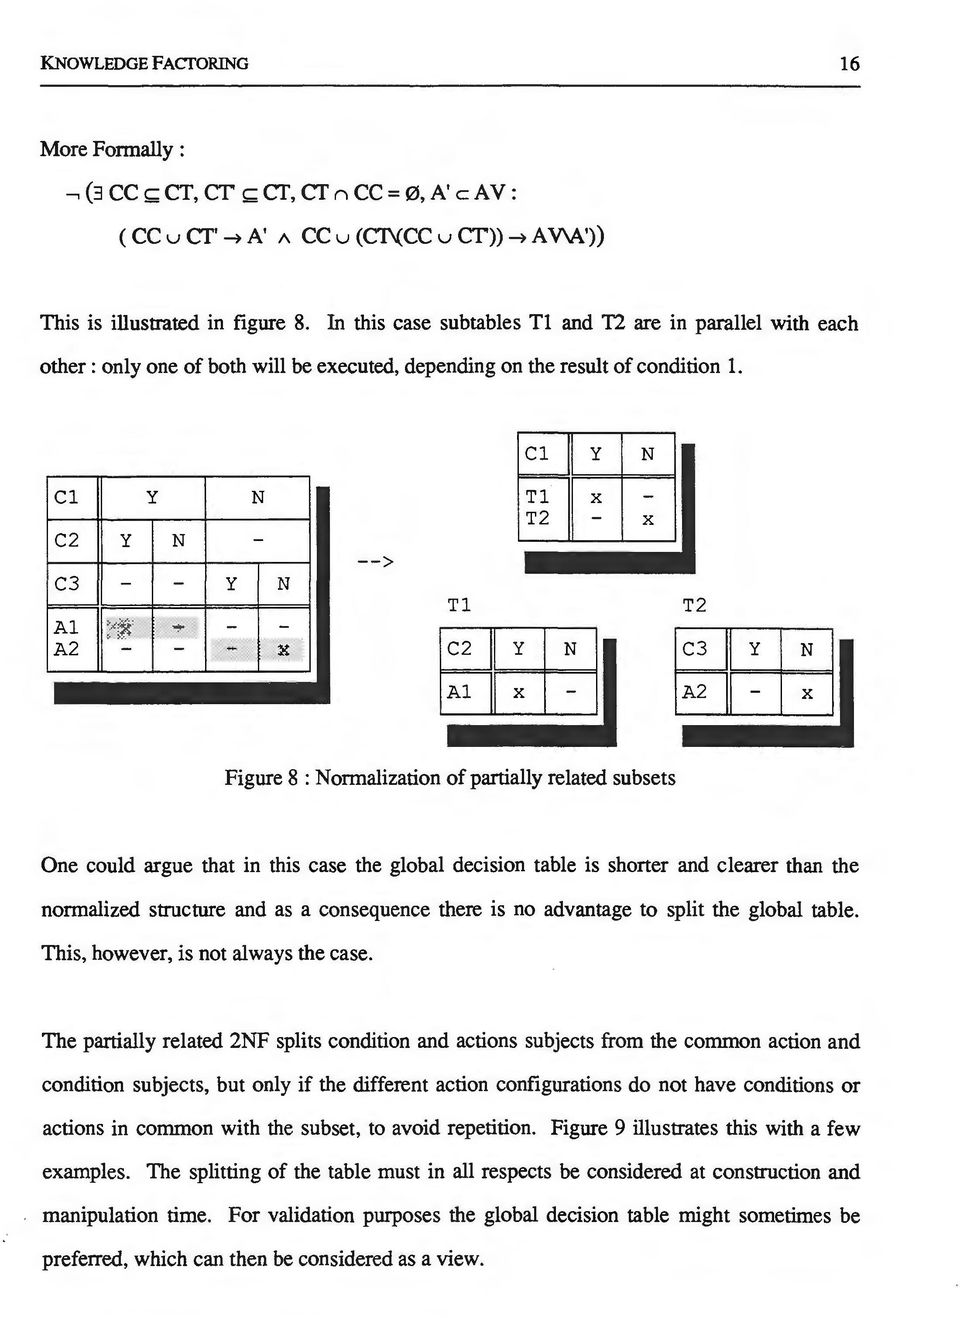 Cl N Cl N Tl T2 C2 N --> C3 N Tl C2 N T2 Figure 8 : Normalization of partiall related subsets One could argue that in this case the global decision table is shorter and clearer than the normalized